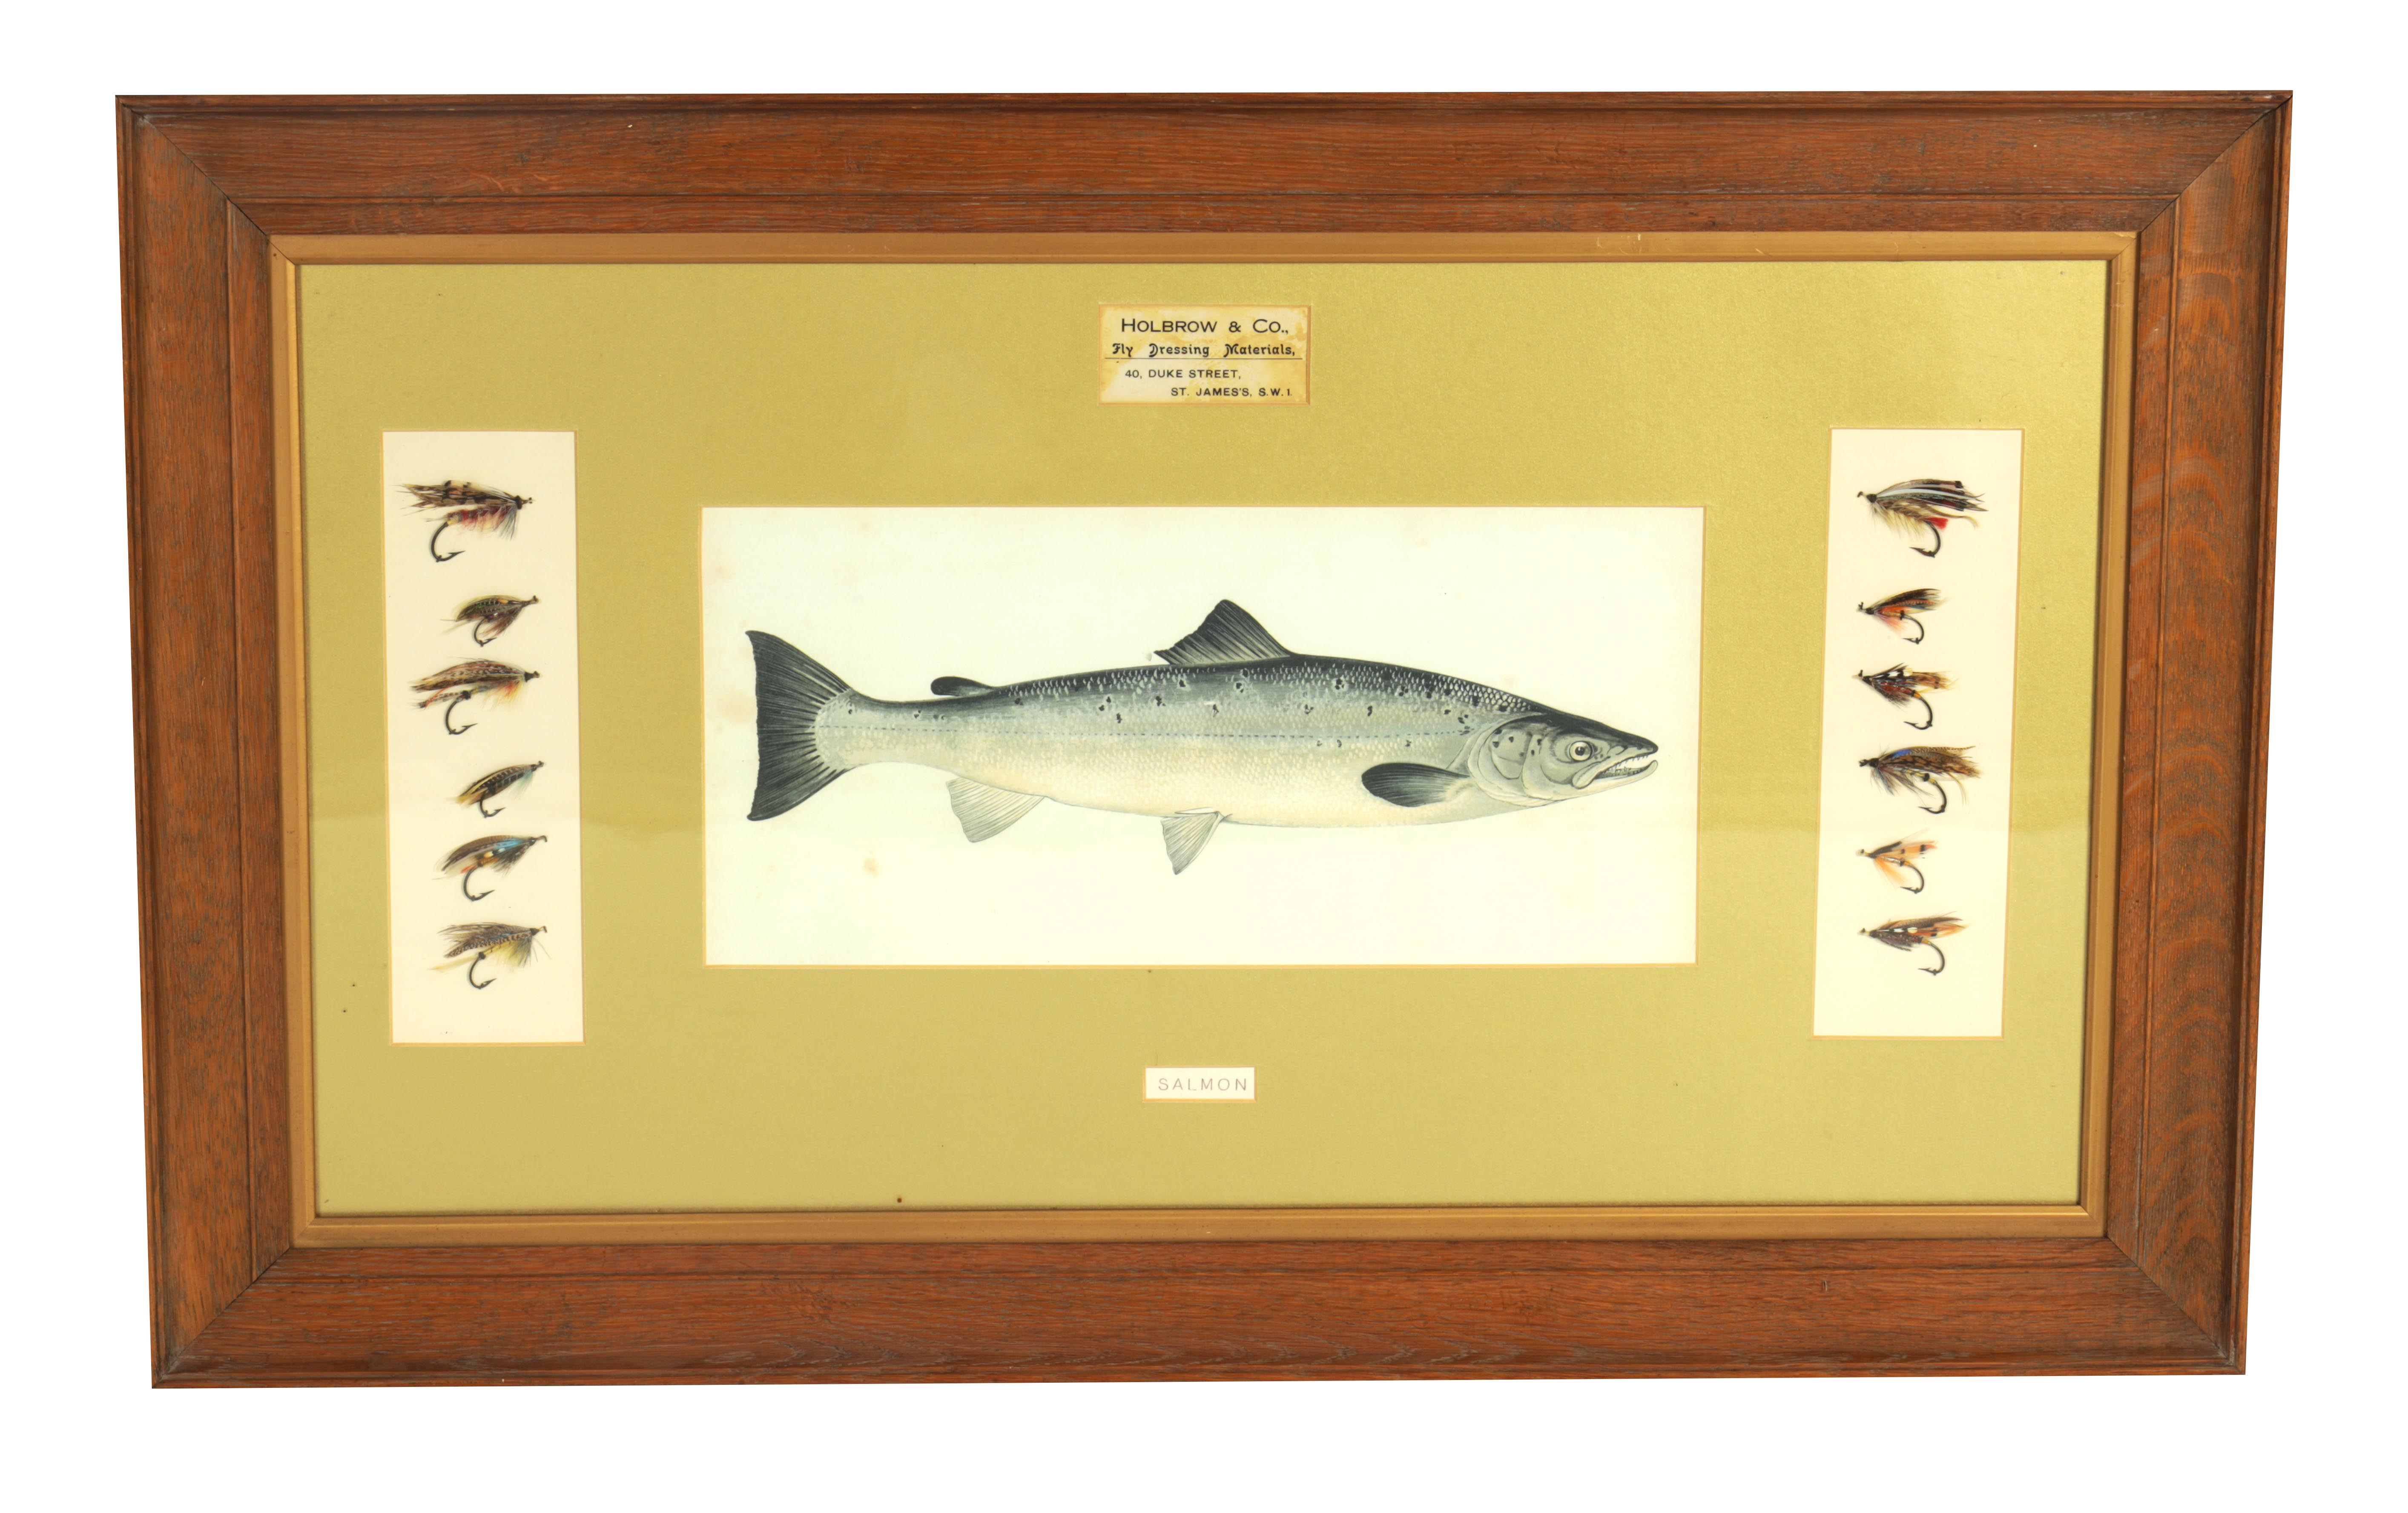 AN EDWARDIAN FLY FISHING SHOP DISPLAY FOR SALMON FLIES from Holbrook & Co. Fly Dressing Materials,